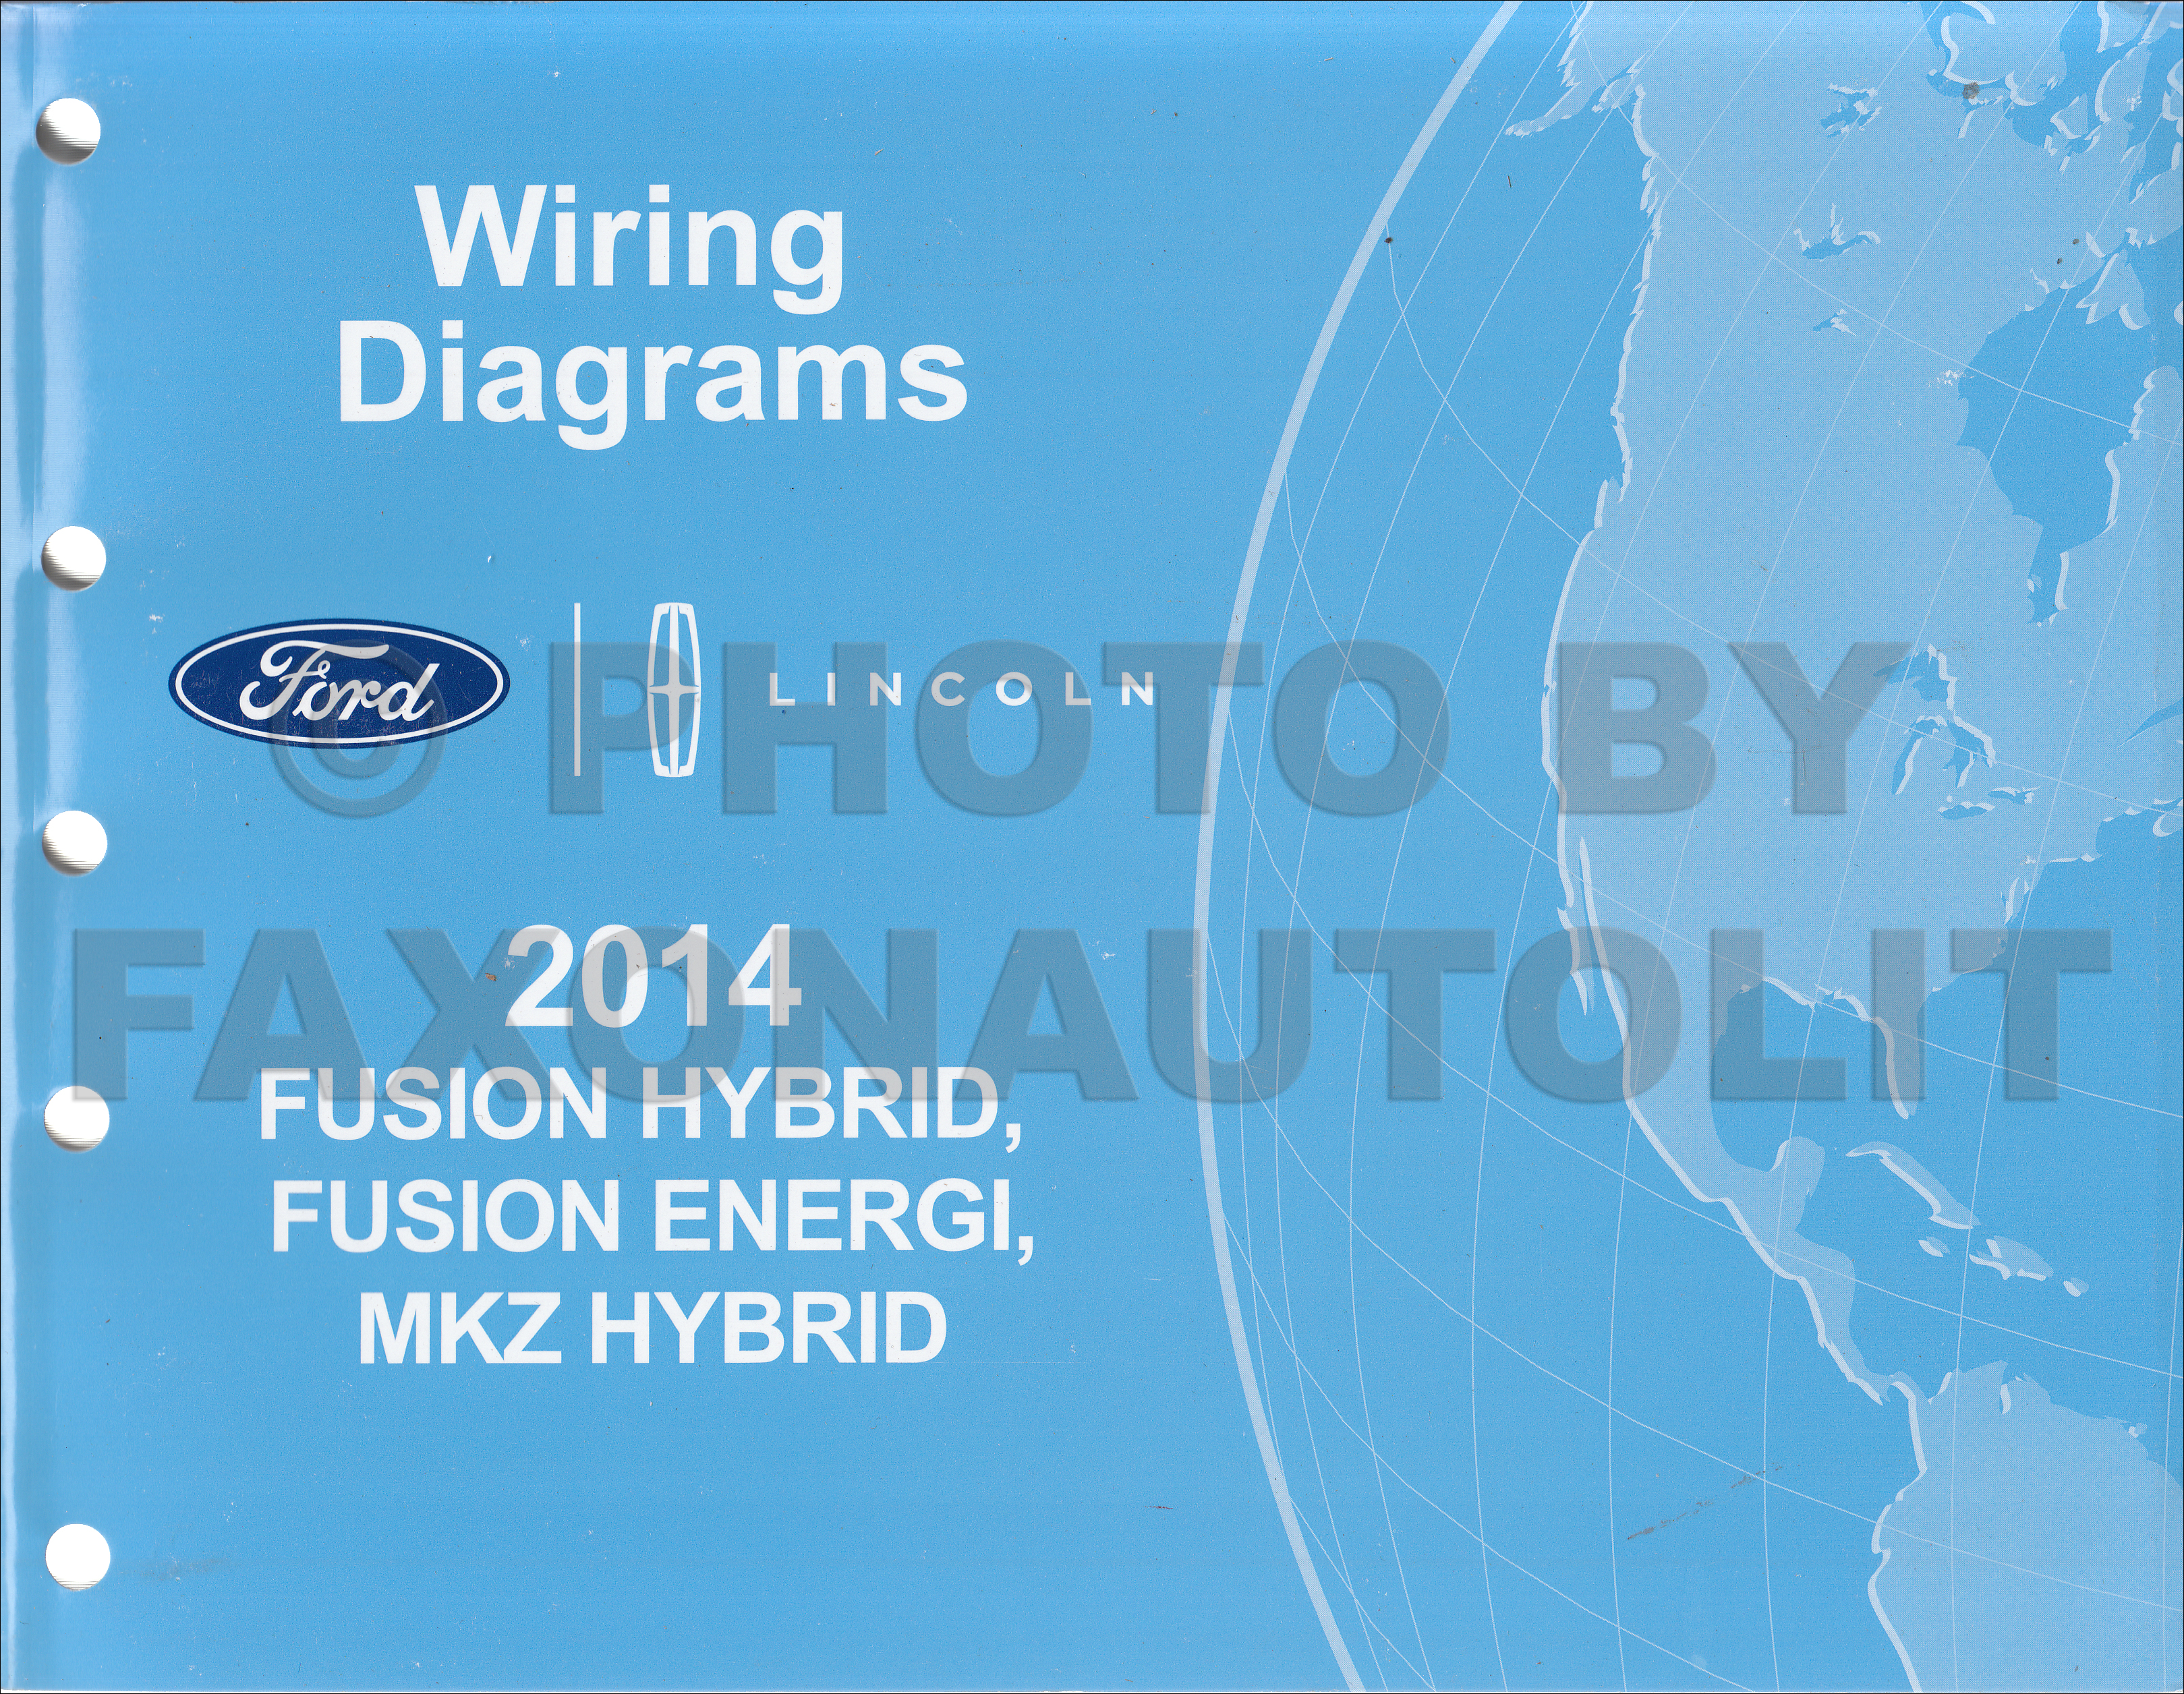 2014 Ford Fusion Energi Hybrid Lincoln MKZ HYBRID Wiring Diagram Manual  Original | Hybrid Wiring Diagrams |  | Faxon Auto Literature